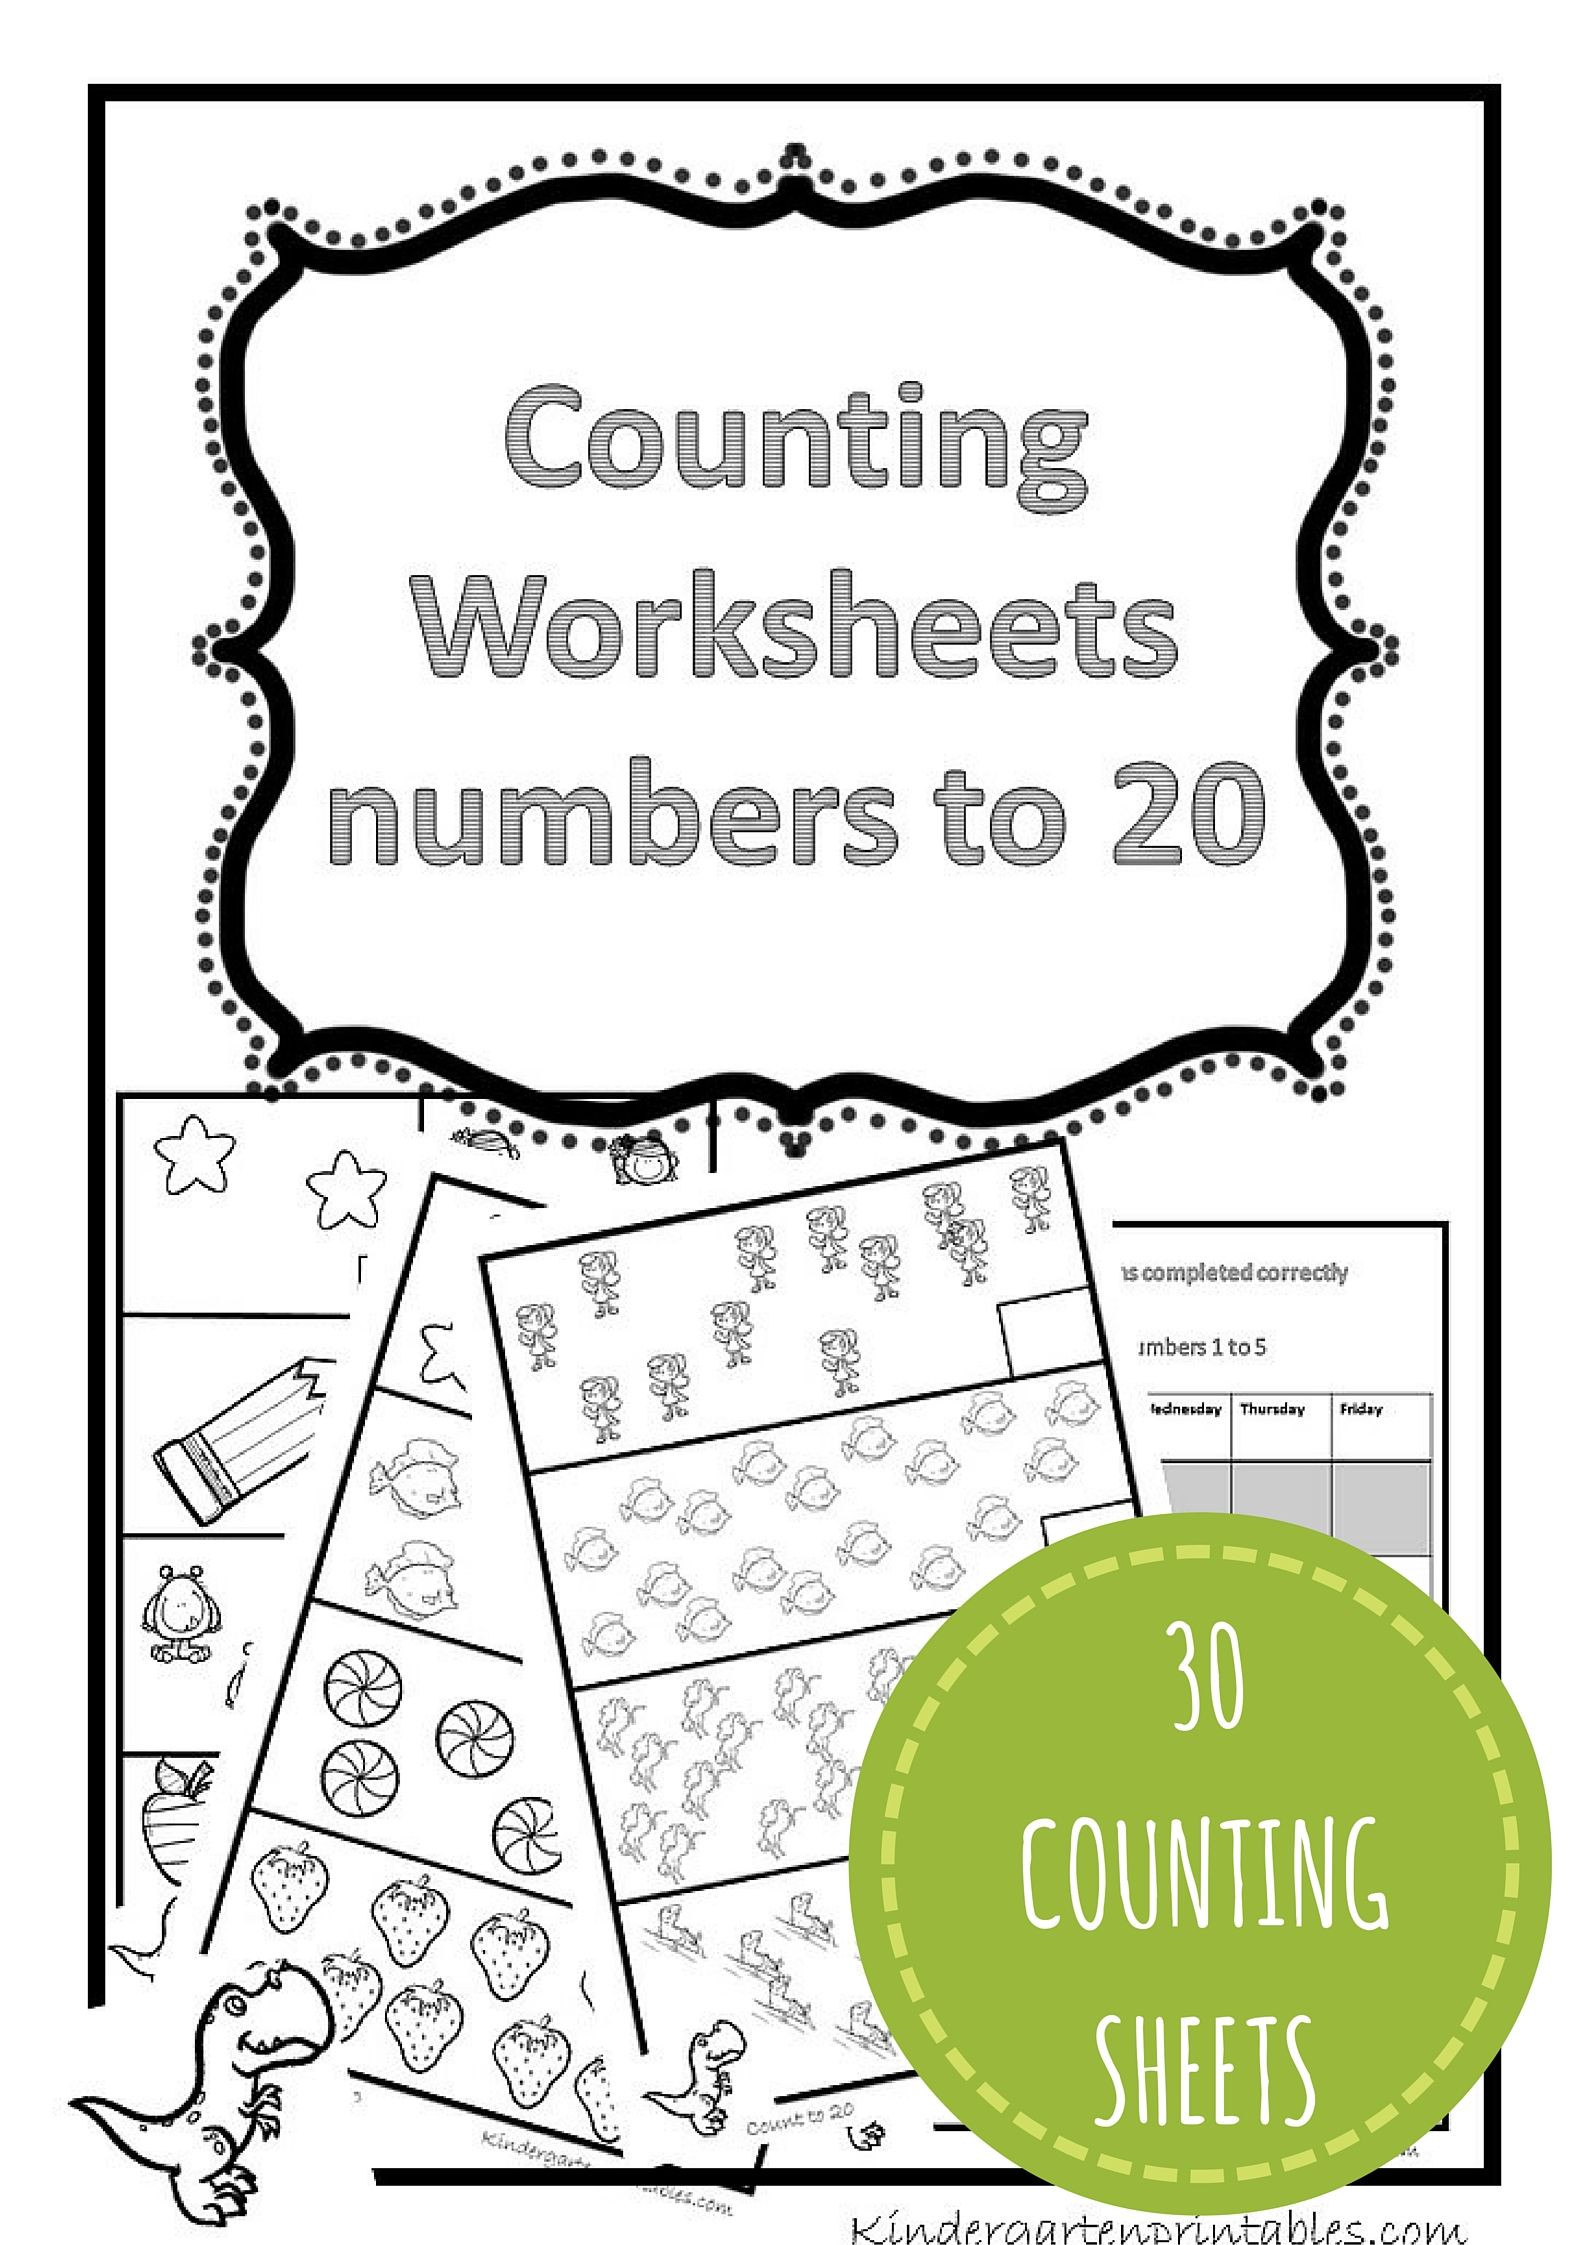 Counting to 20 Worksheet Counting Worksheets 1 20 Free Printable Workbook Counting